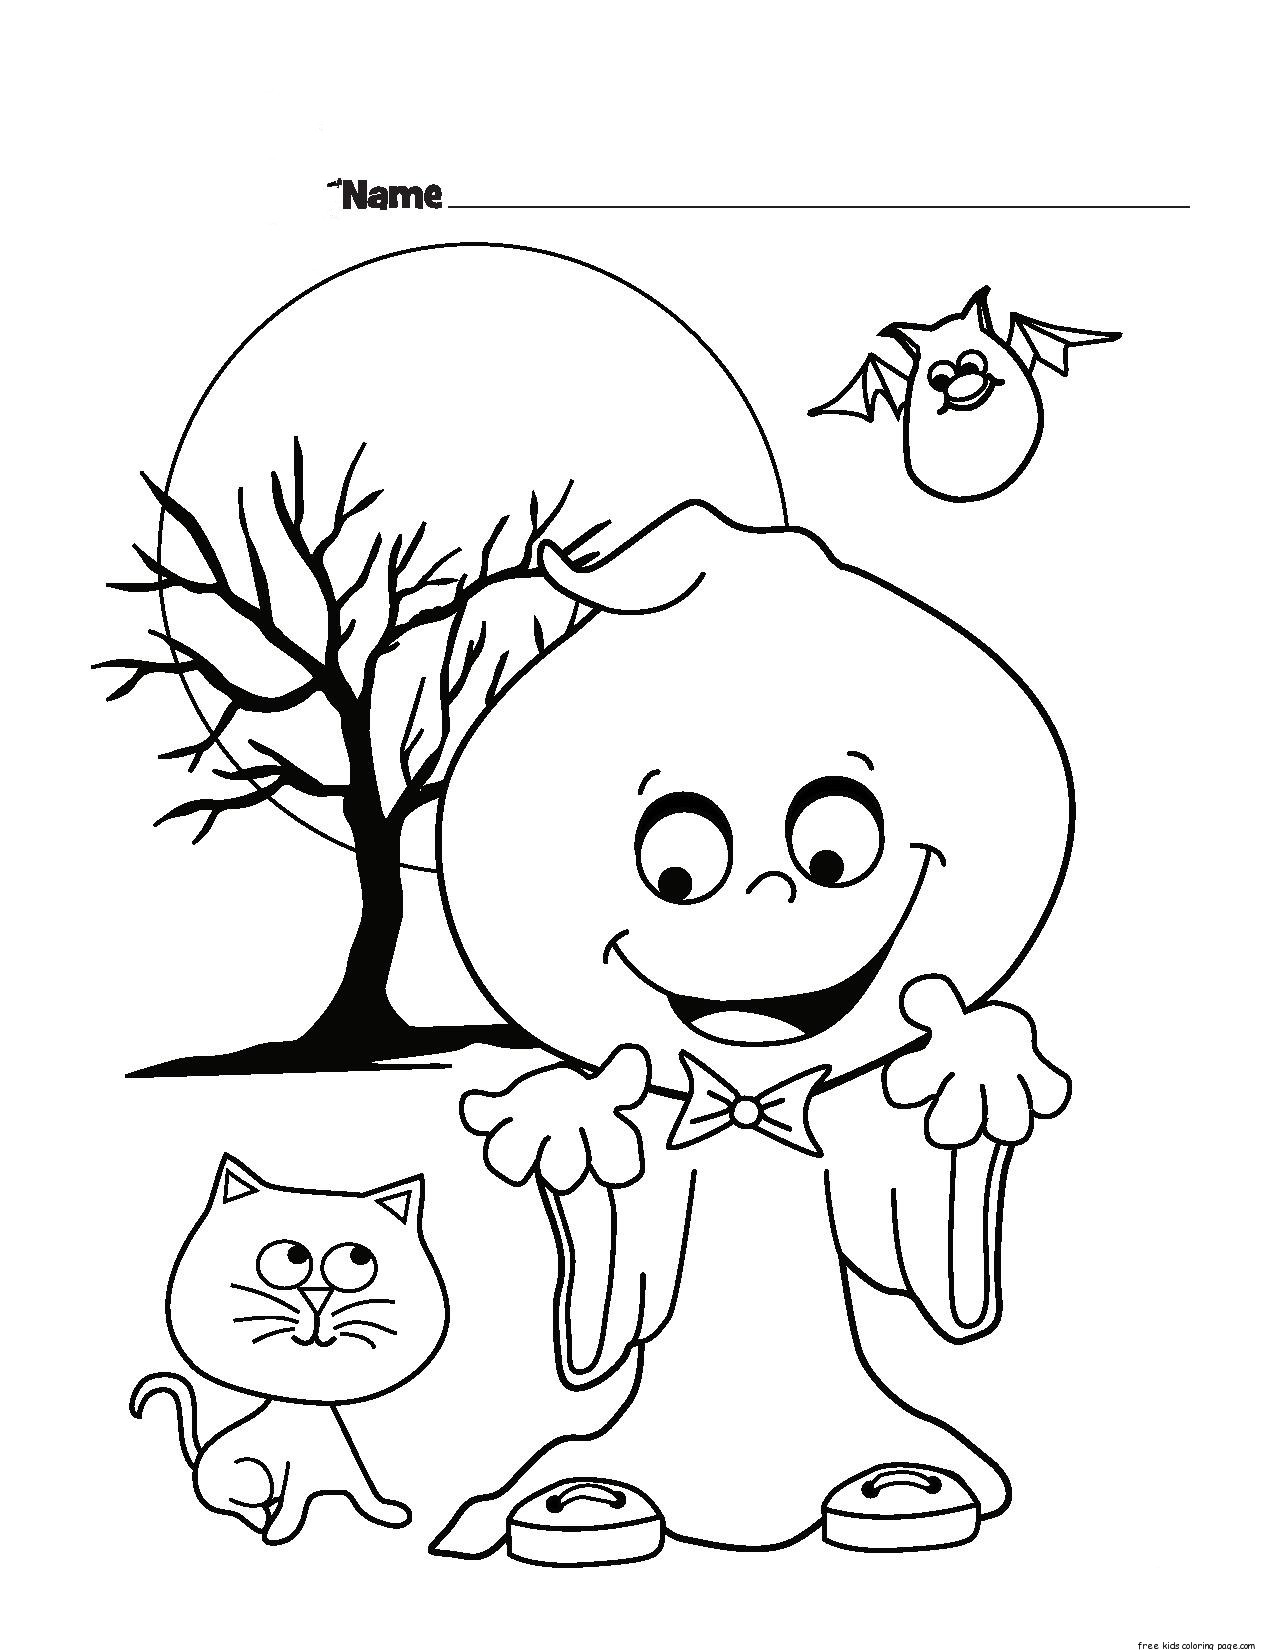 coloring kids pages - photo#14